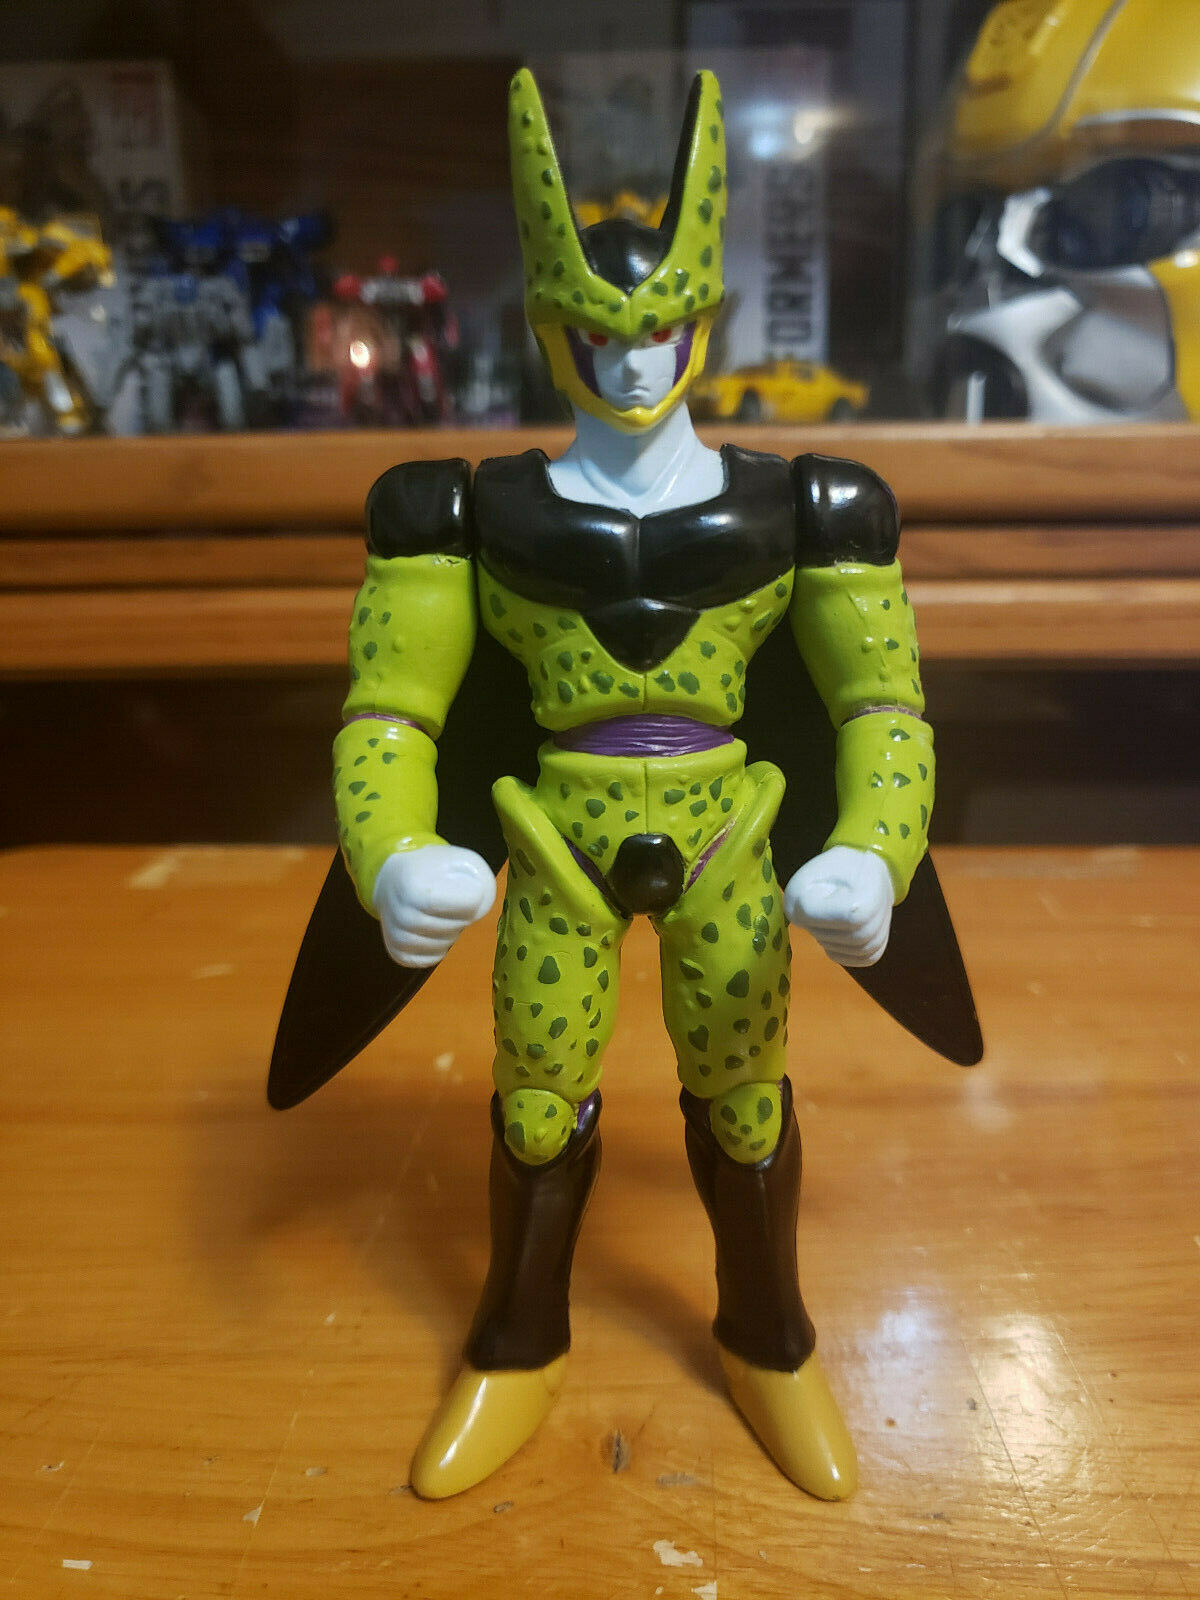 Character:Cell Vol 11:BANDAI Dragonball Z  and Dragon Ball GT super battle collection AB Toys & Irwin